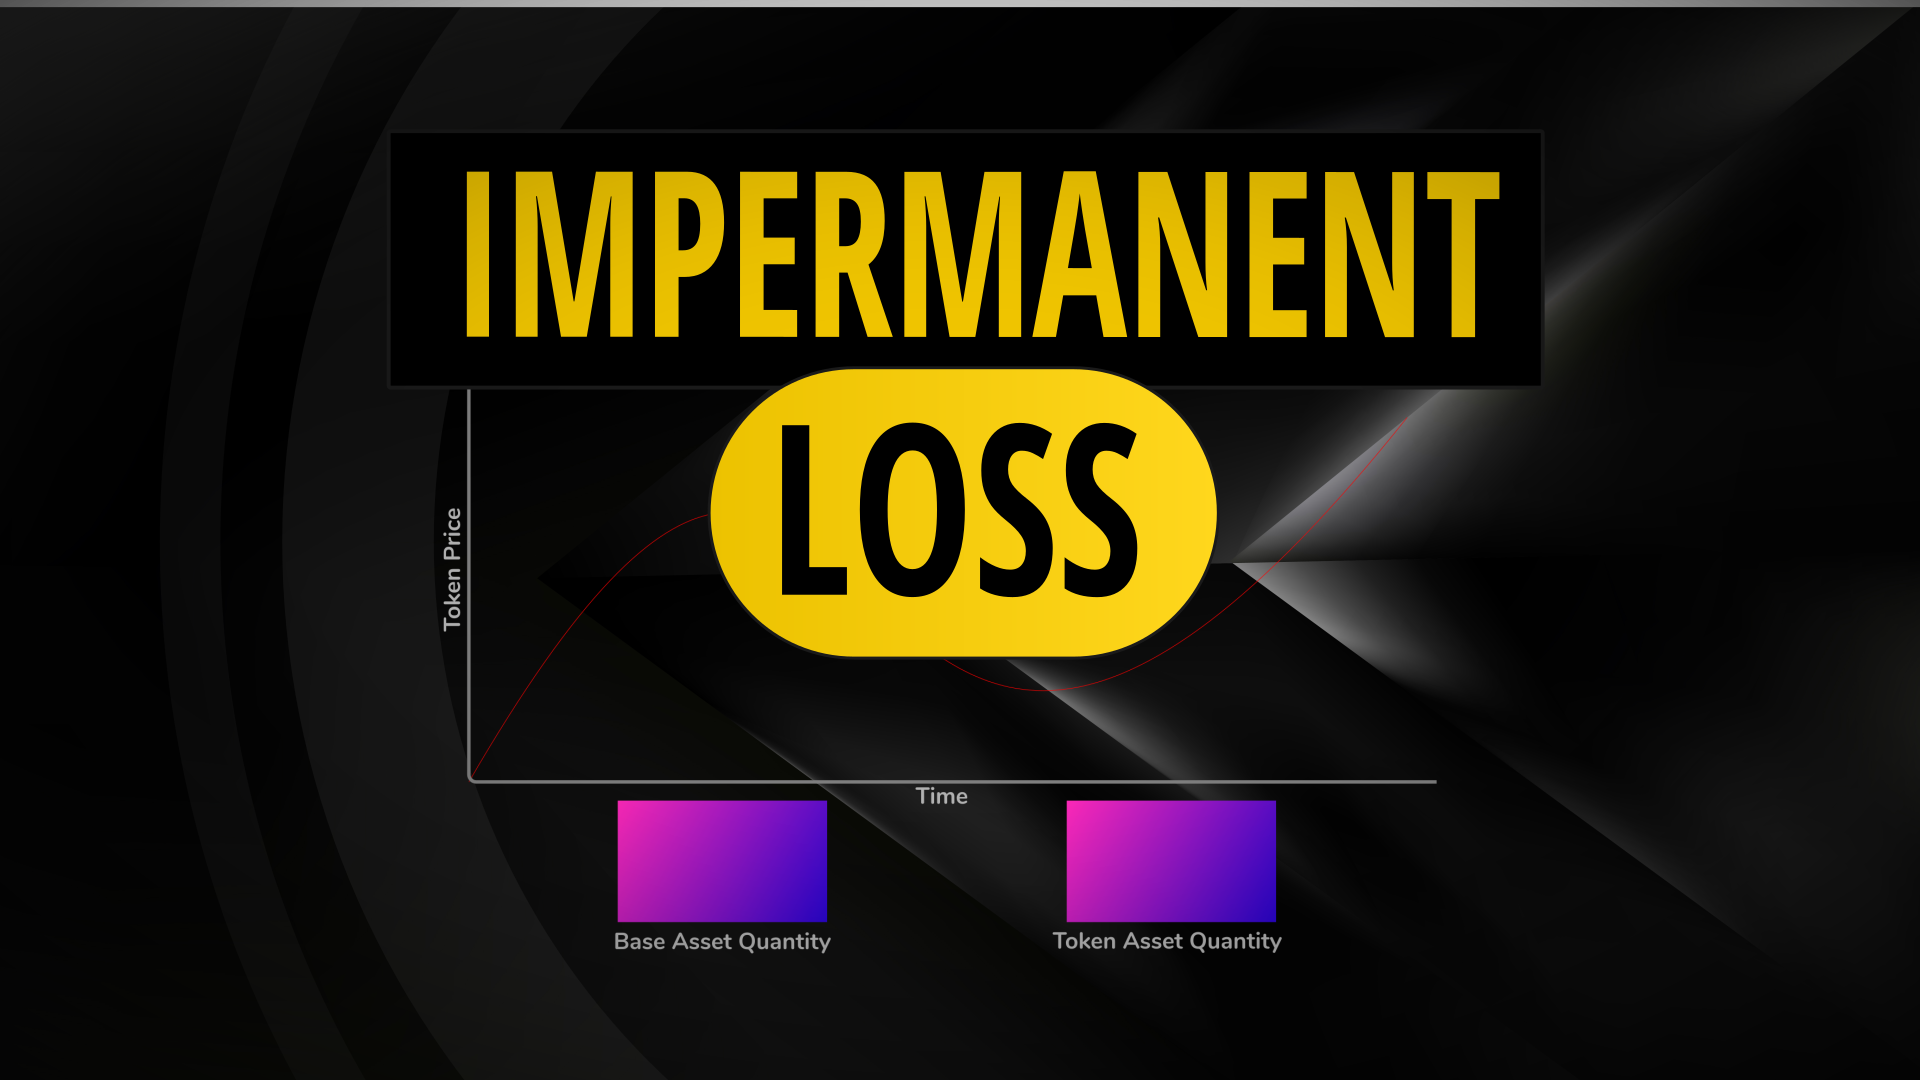 Impermanent Loss | How To Calculate And Mitigate DeFi's Biggest Risk